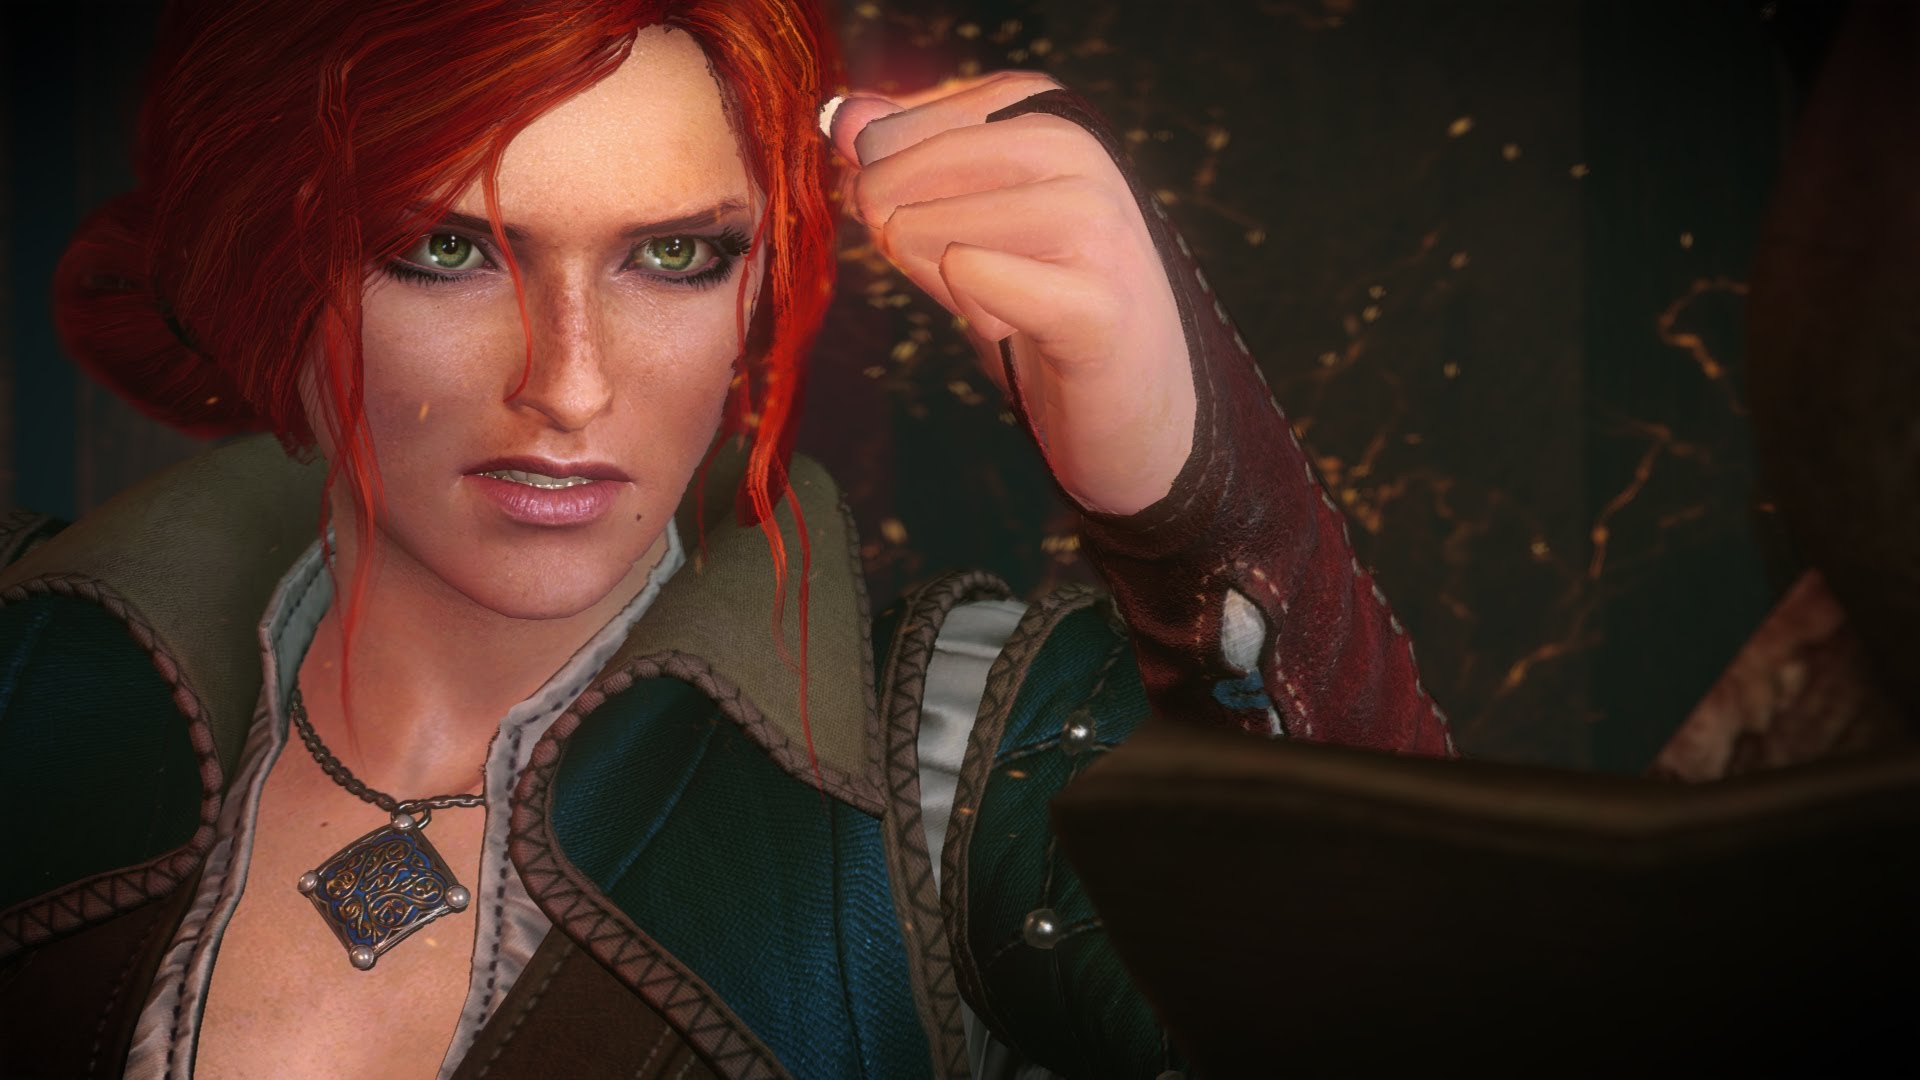 Trailer: THE WITCHER 3 – THE SWORD OF DESTINY